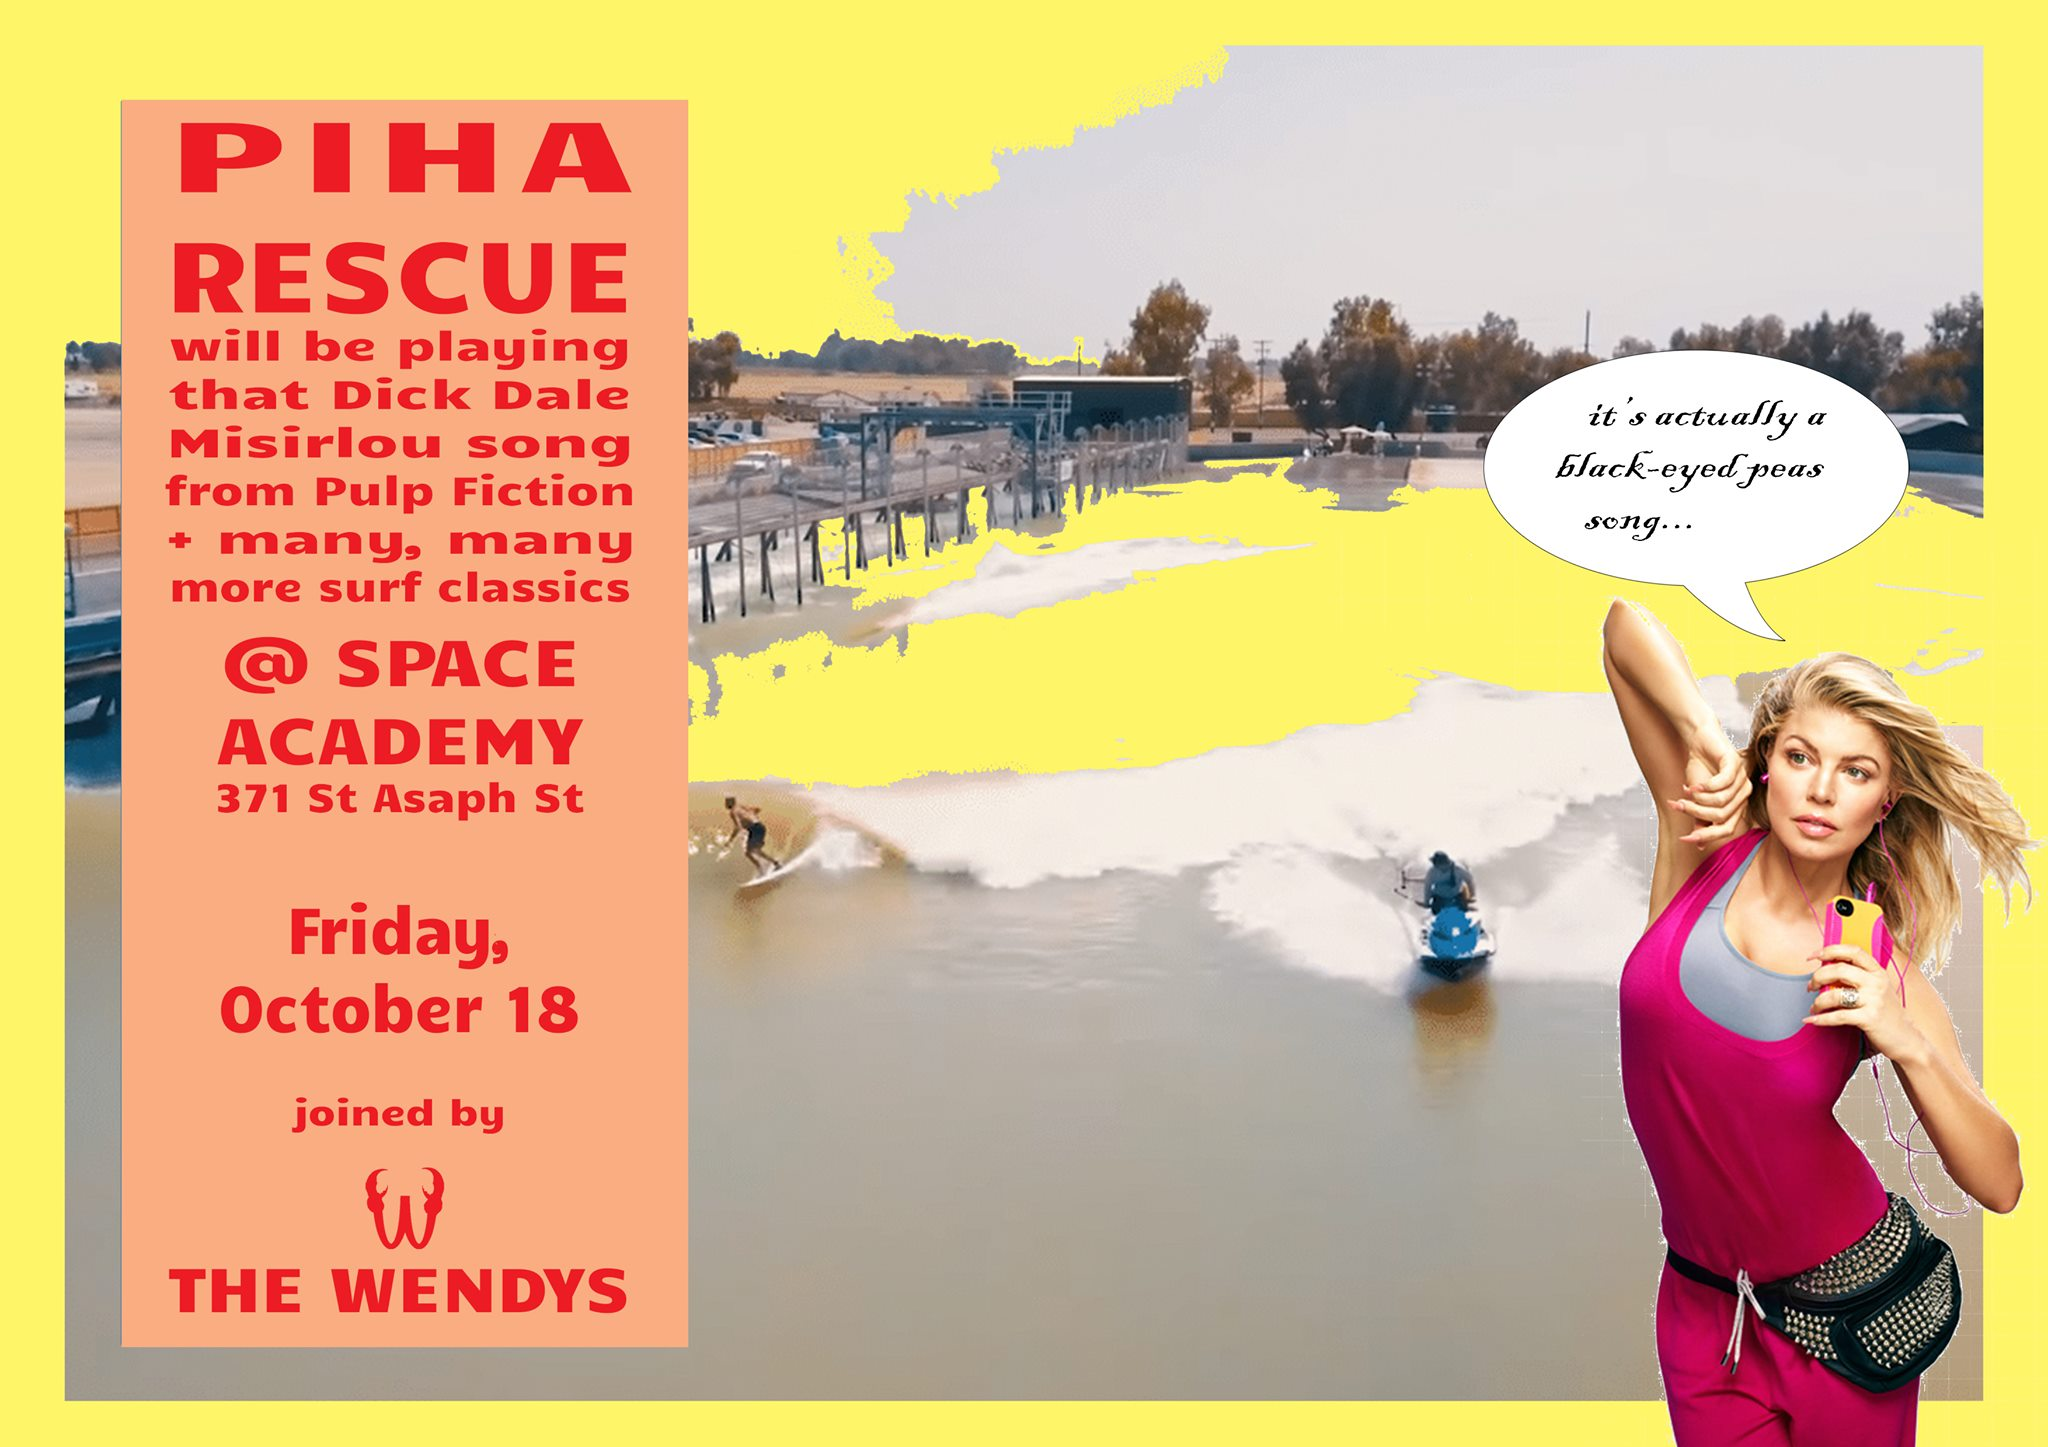 Piha Rescue, The Wendys